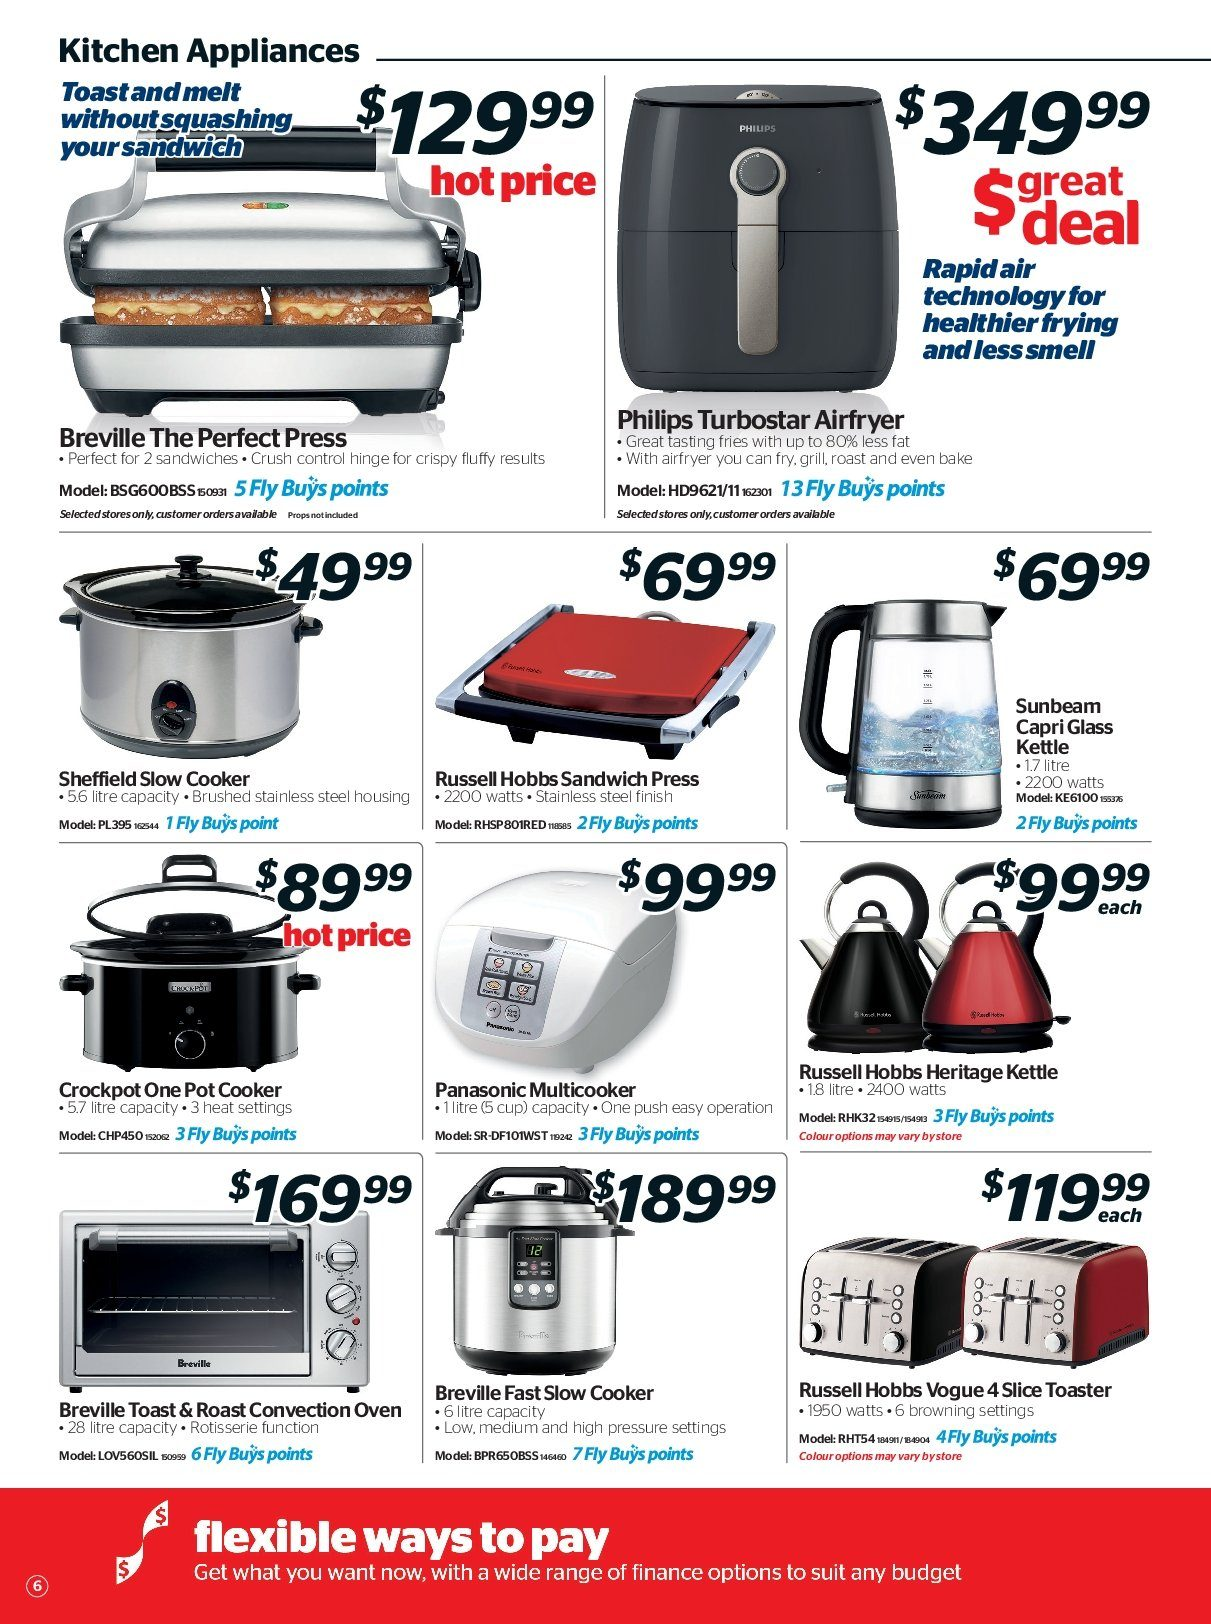 Noel Leeming mailer - 16.05.2018 - 29.05.2018 - Sales products - browning, cup, glass, grill, slow cooker, kitchen, philips, pot, panasonic, oven, sandwich, toaster, russell hobbs, kettle. Page 6.